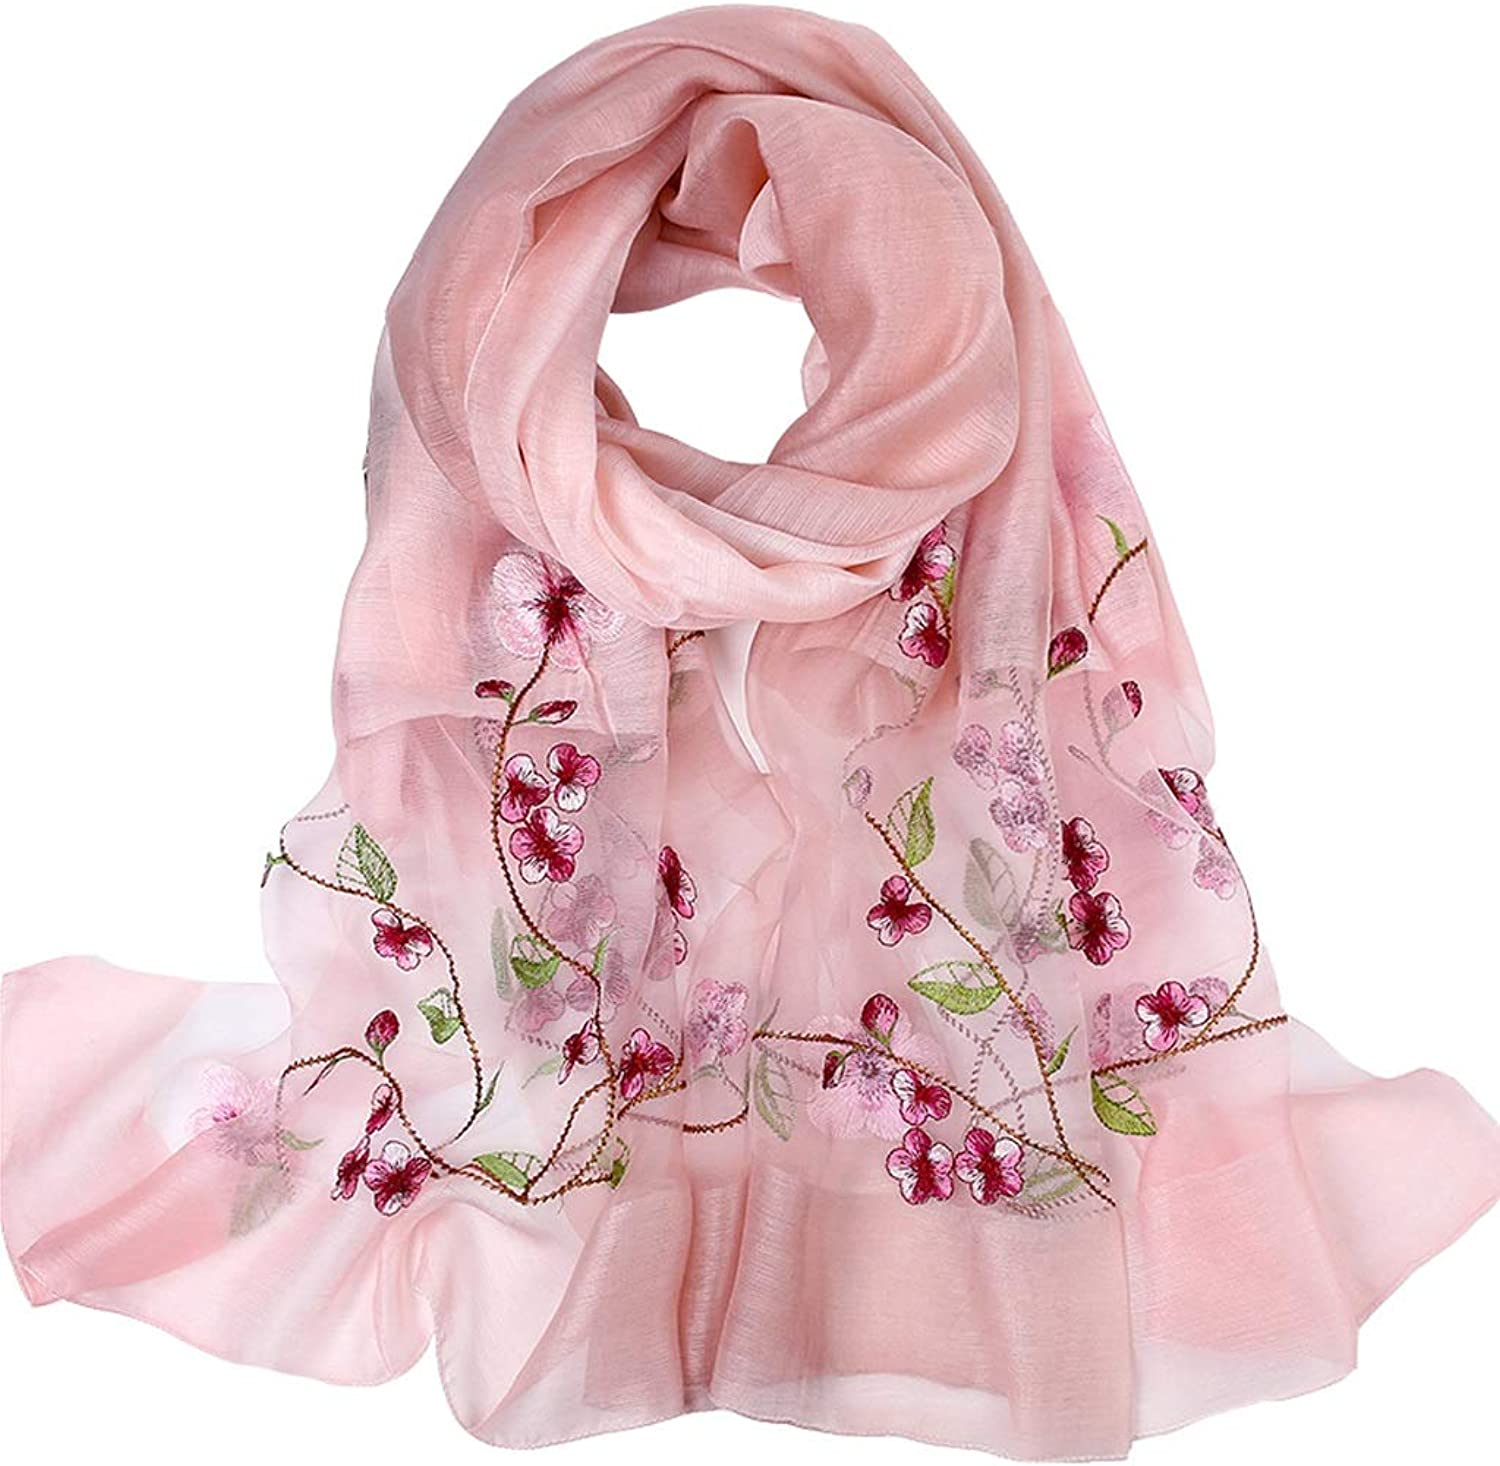 UltraThin Lady Women Fashion Silk Scarf Hangzhou Long Soft Embroidery Shawl Sarong Wrap Female Lightweight Scarves Luxury Gifts (color   Pink)